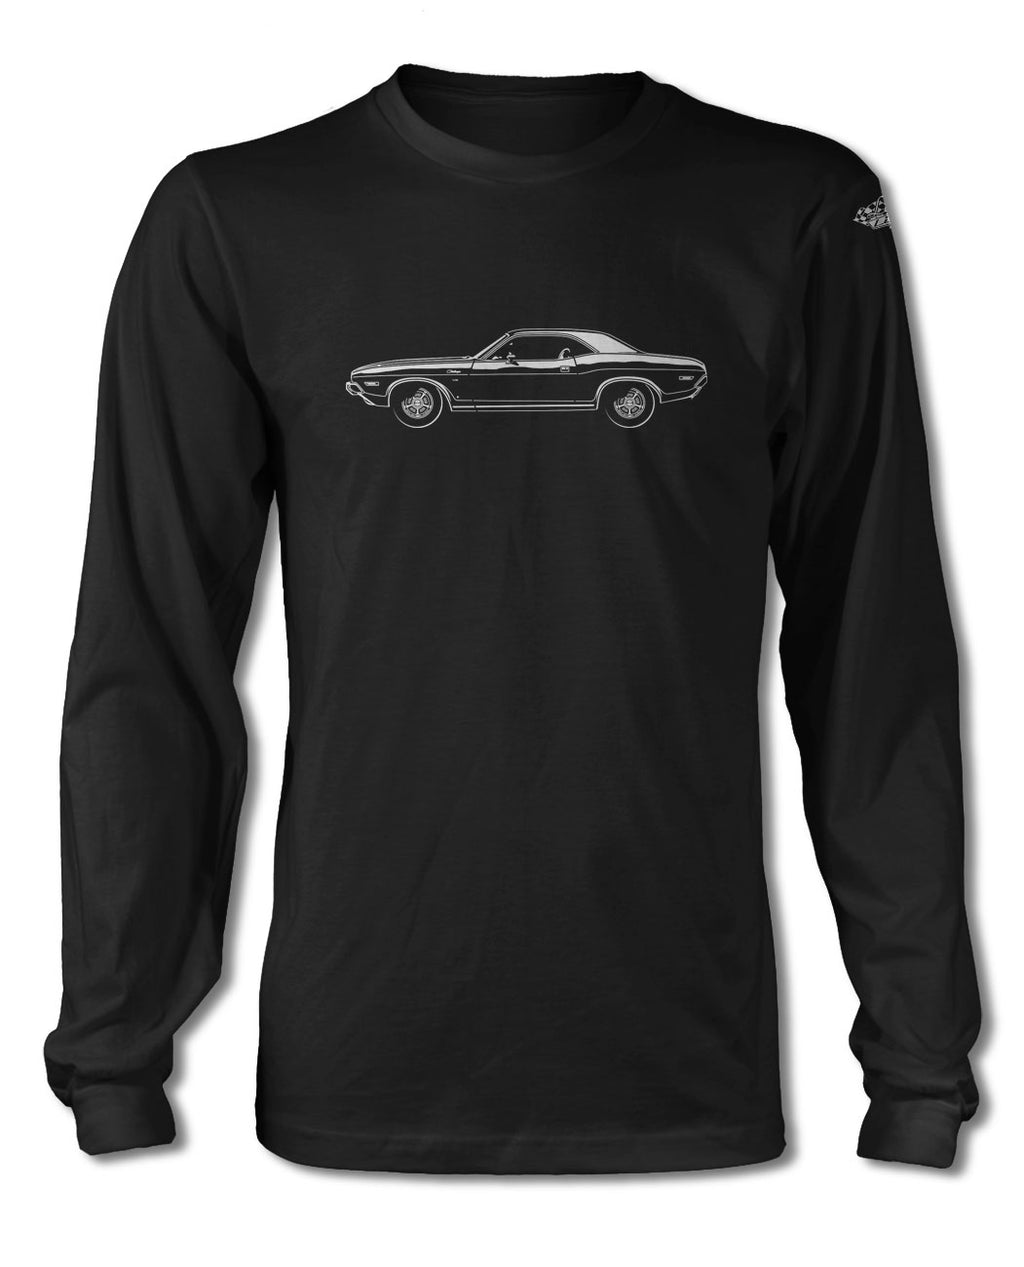 1970 Dodge Challenger Base Coupe T-Shirt - Long Sleeves - Side View